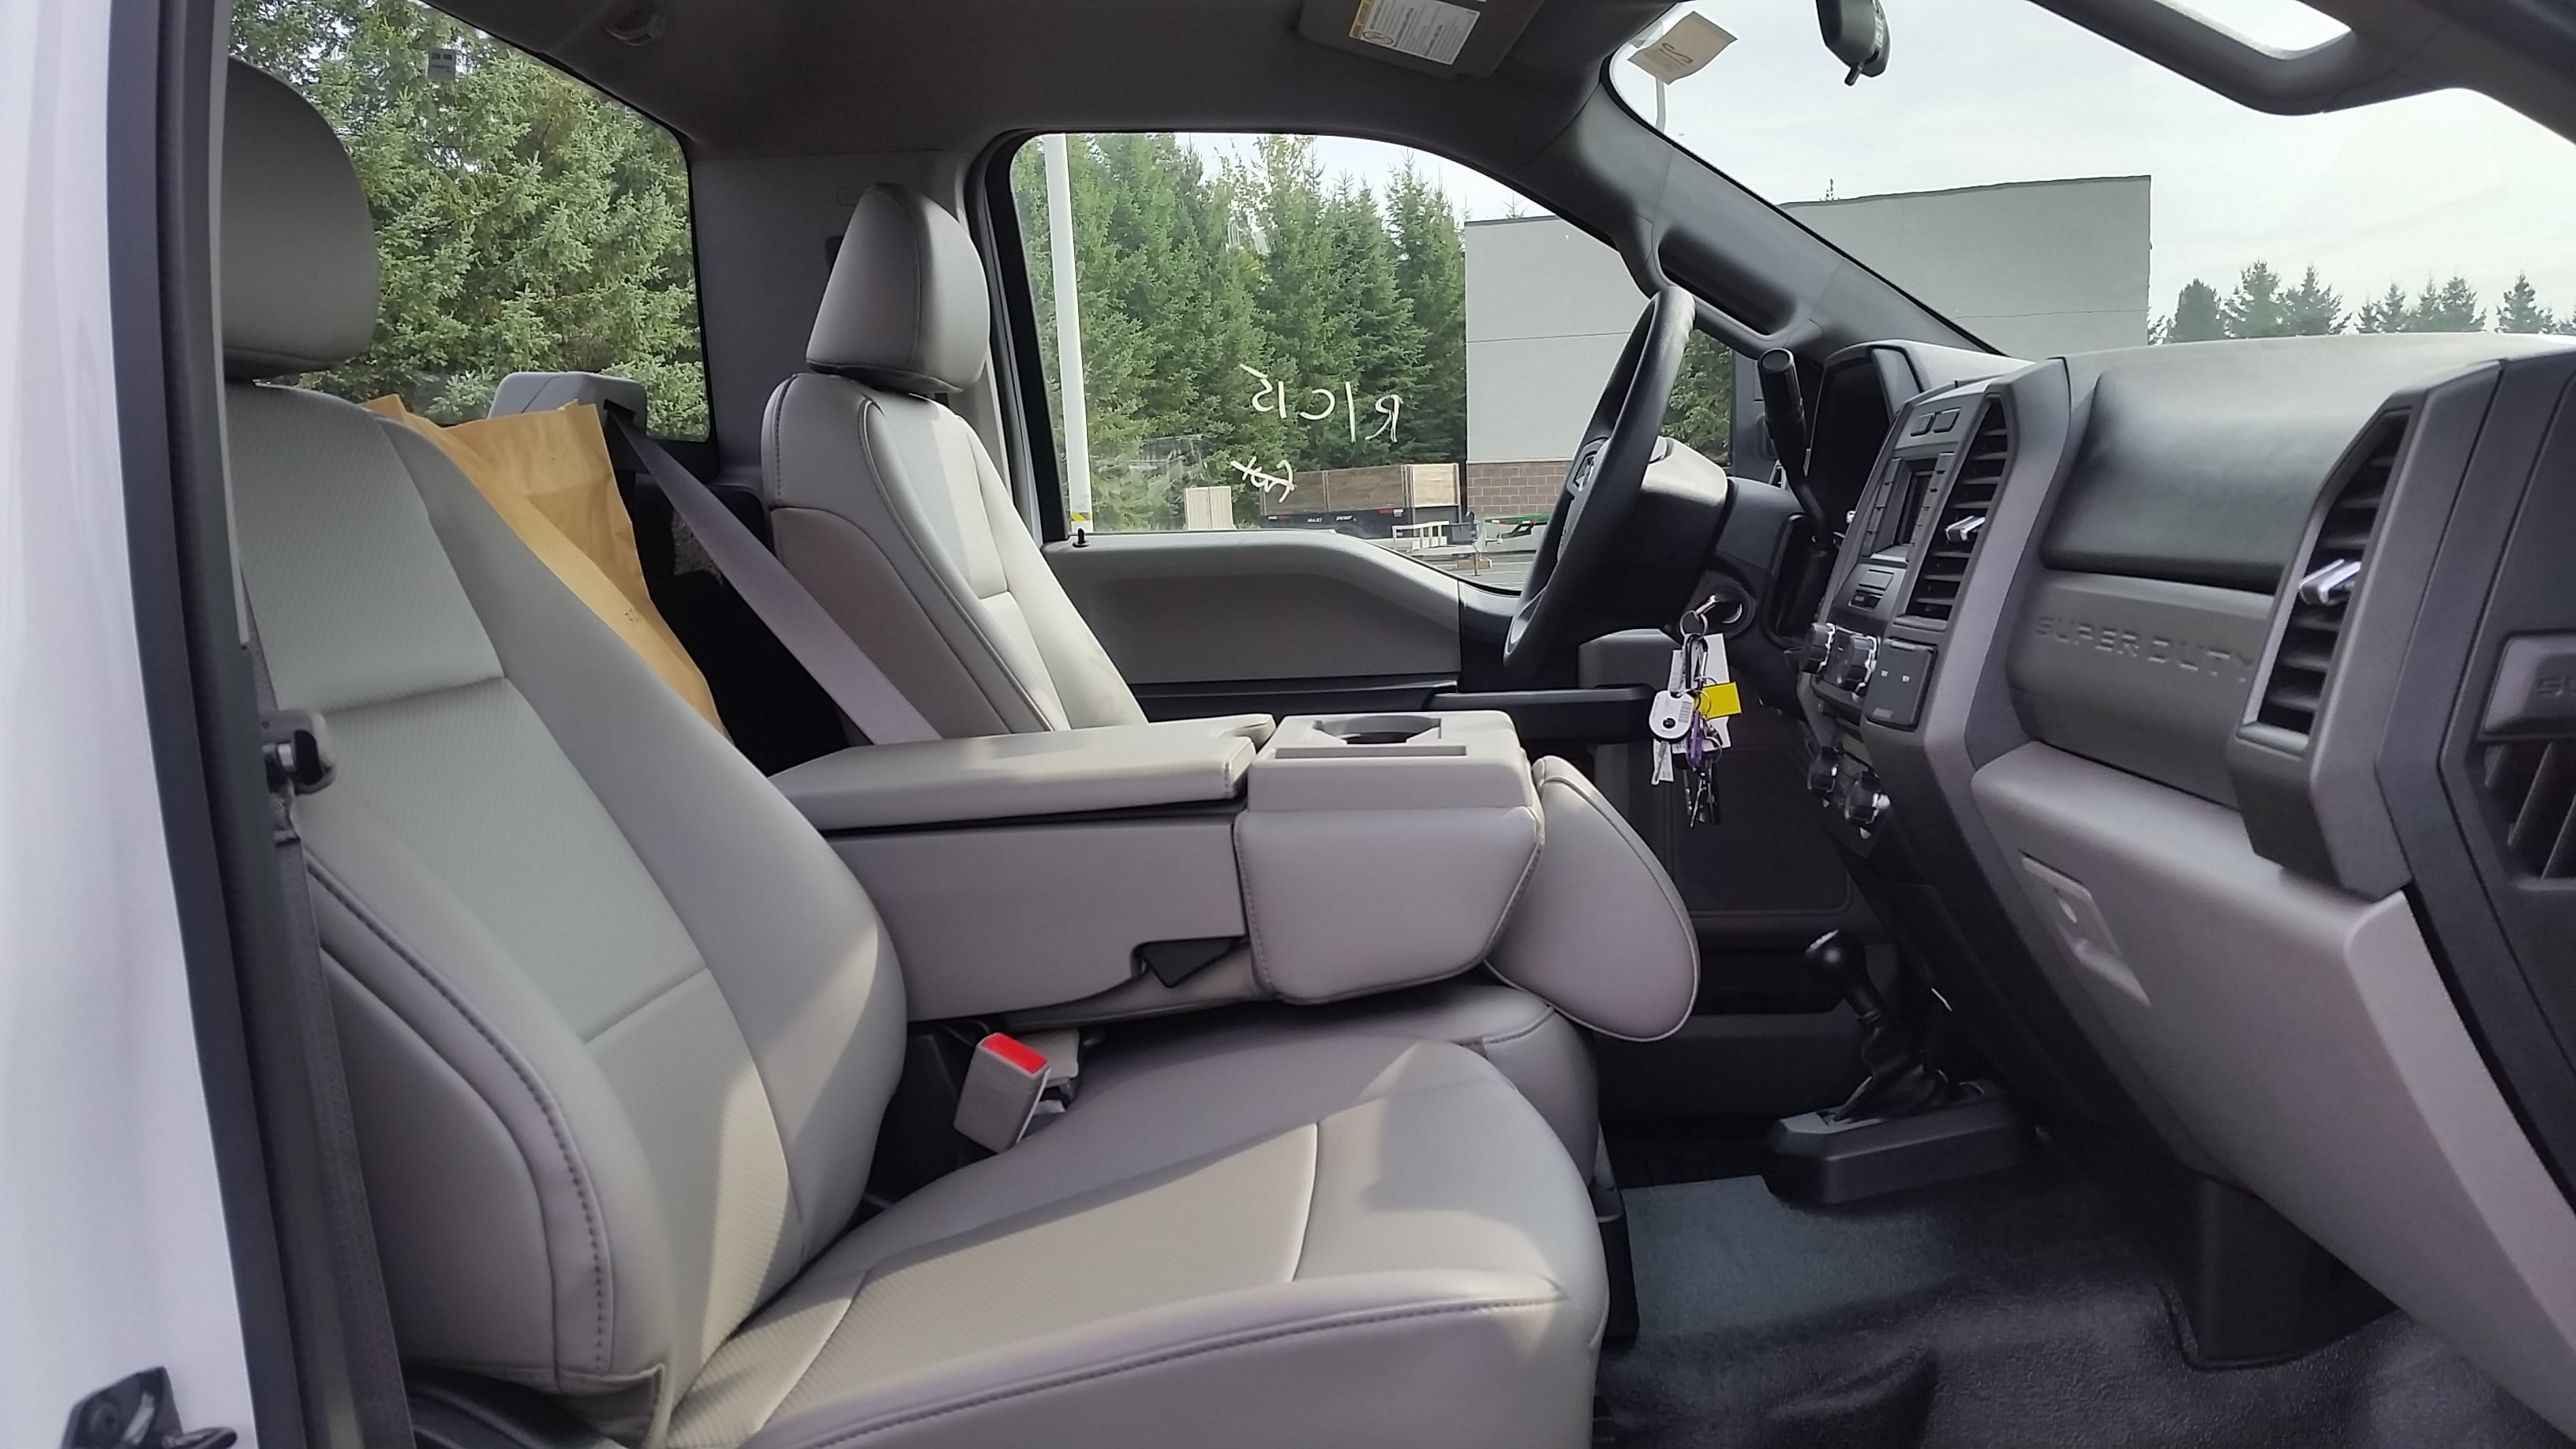 2018 F-550 Regular Cab DRW 4x4,  Cab Chassis #21839 - photo 15